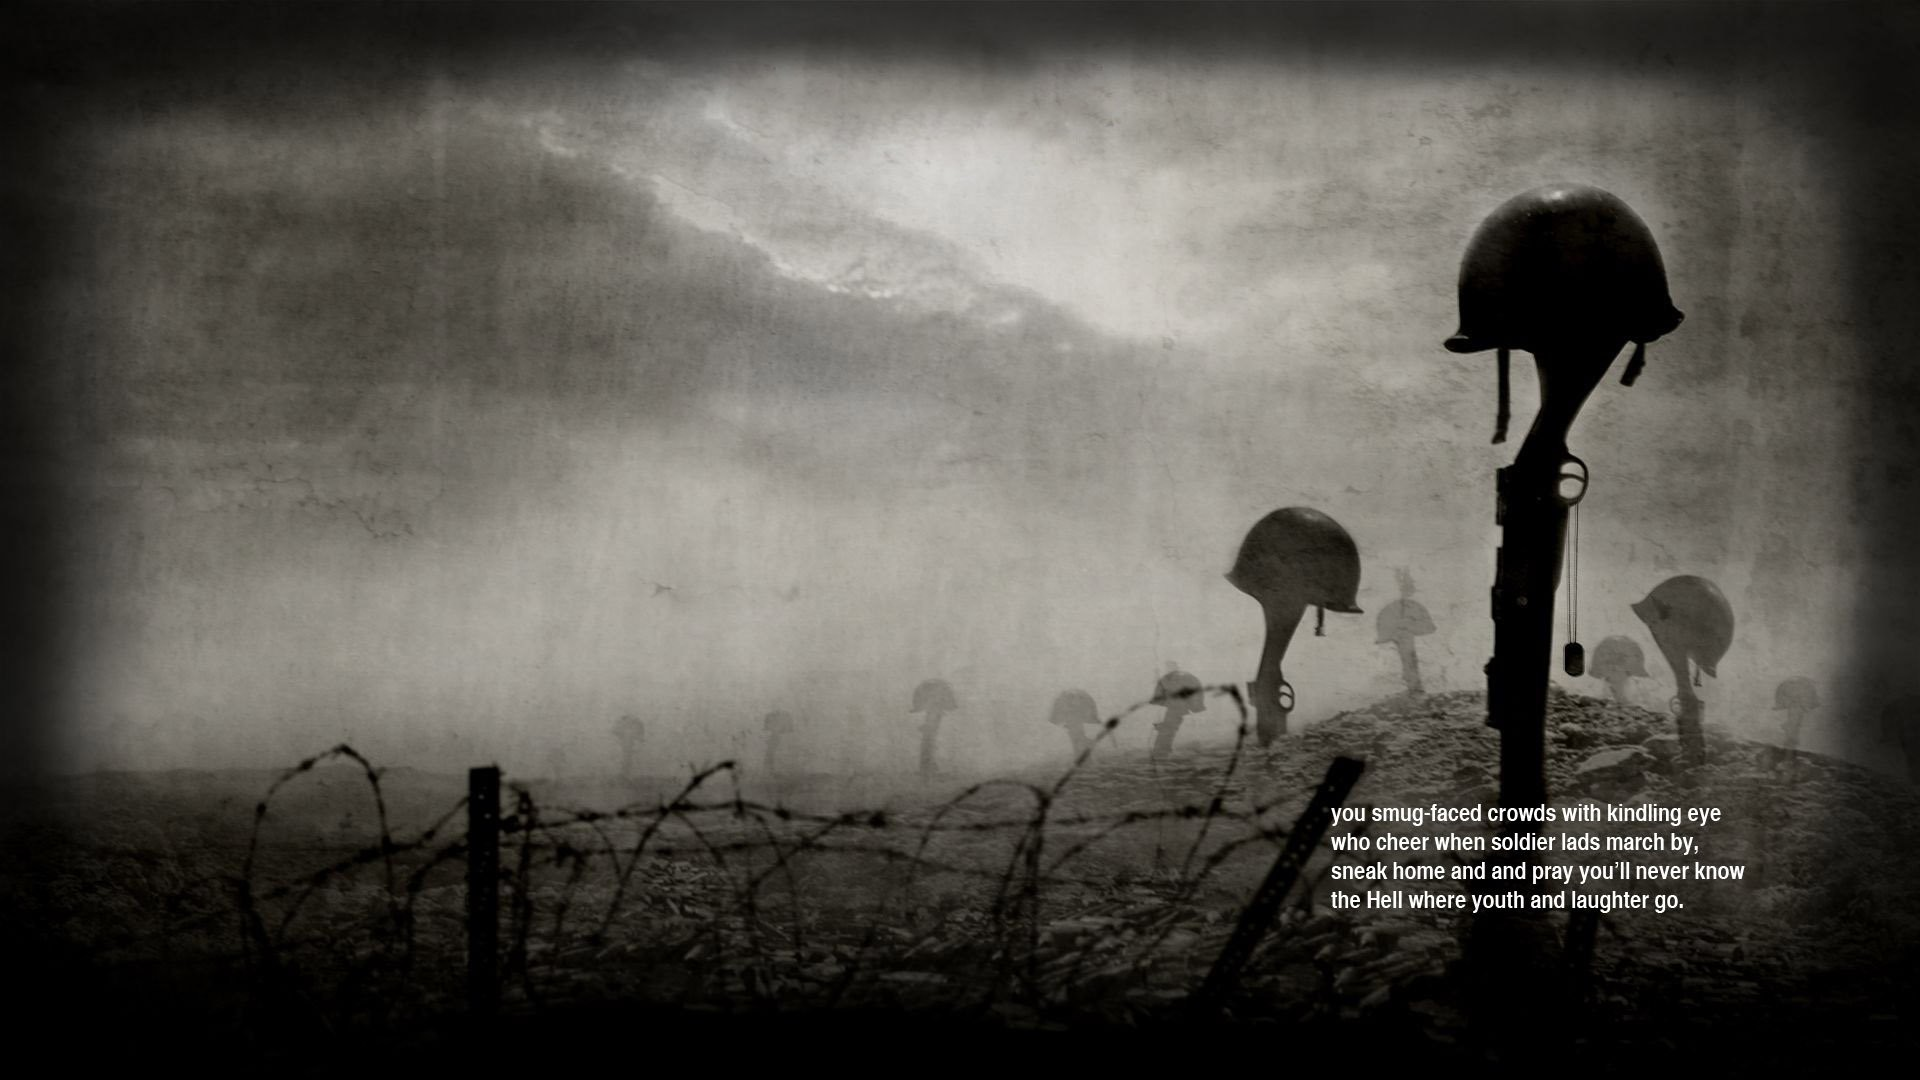 1920x1080 War guns quotes helmets poetry Siegfried Sassoon wallpaper |  |  304814 | WallpaperUP